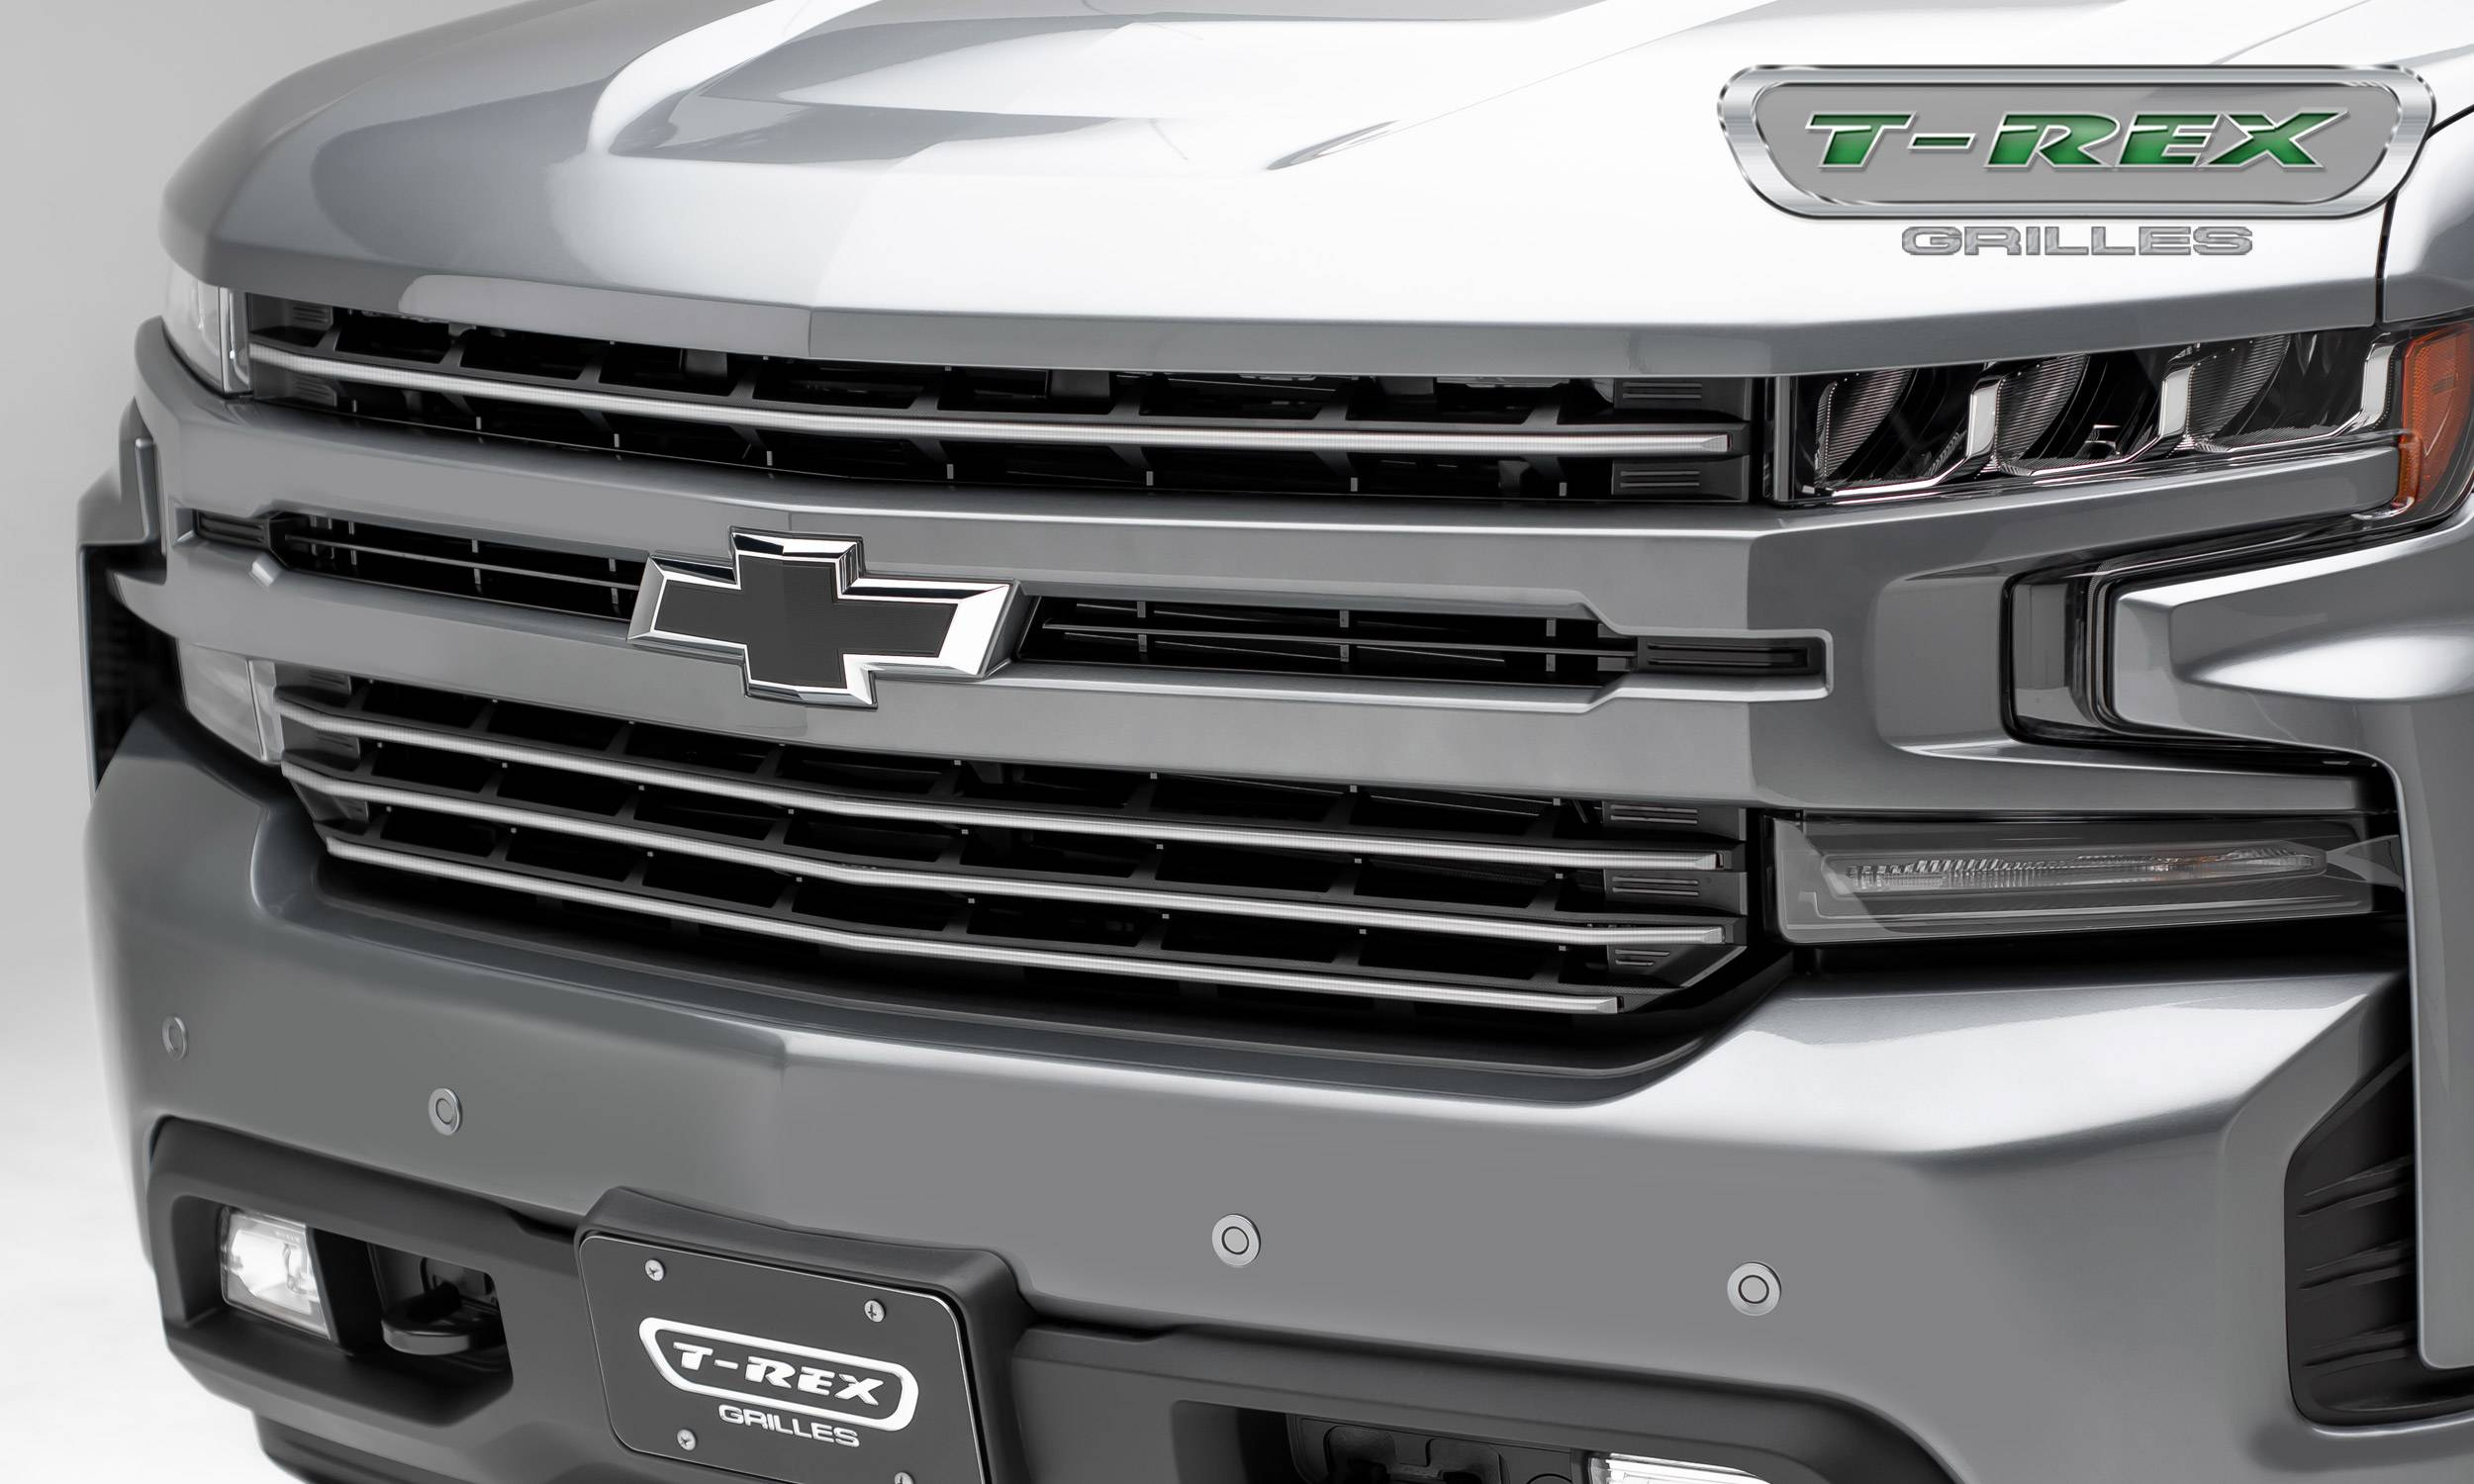 T-REX Grilles - Chevrolet Silverado 1500 2019 Billet Grille, Horizontal Round, Brushed, Aluminum, 4 Pc, Overlay - Pt #6211233